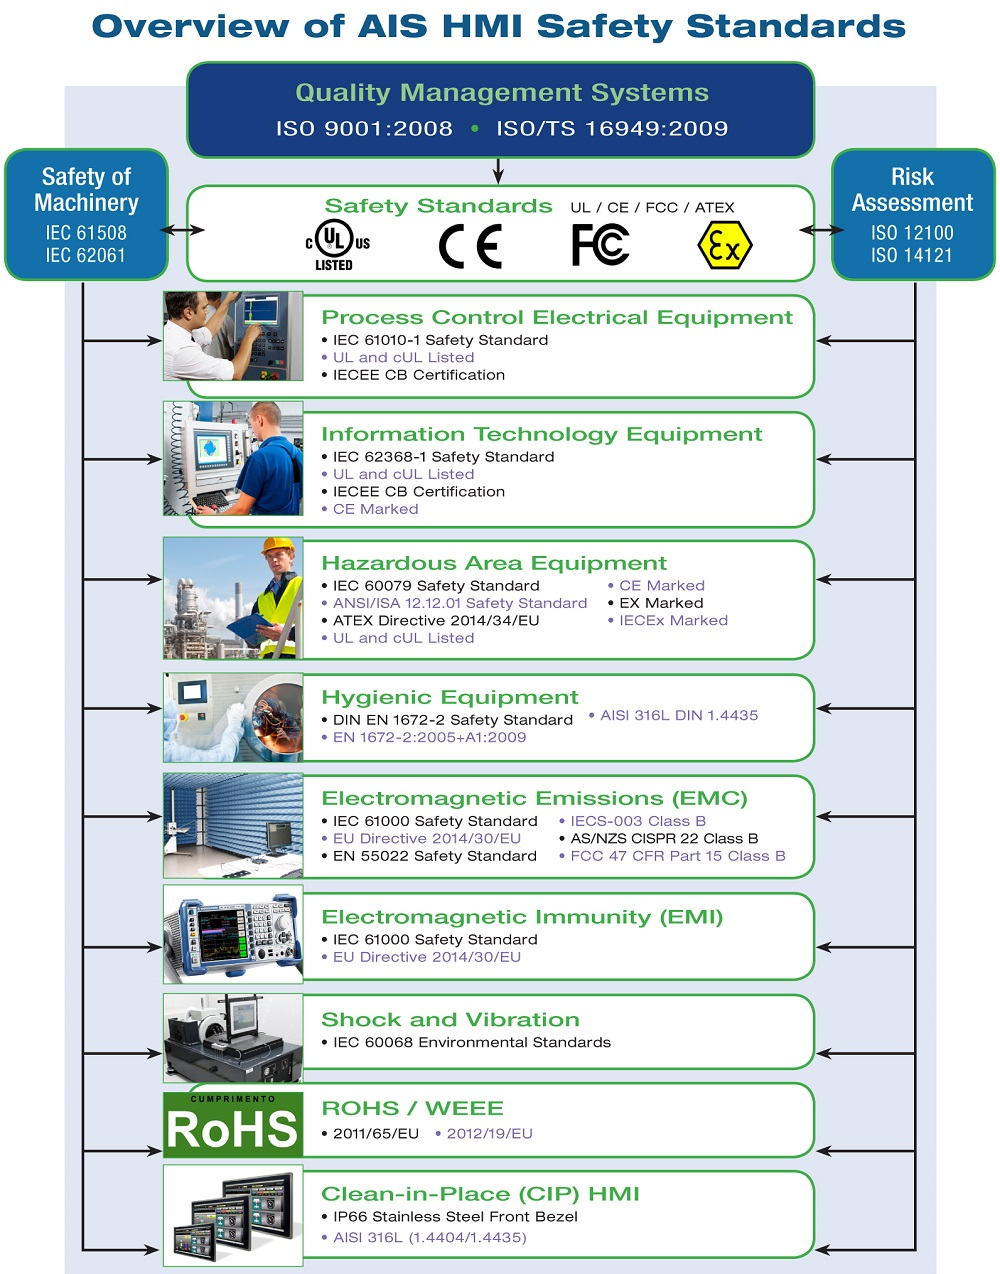 Hazard Based Standard IEC UL EN 62368-1 and IEC UL EN 61010-1 HMI, Hazard-based Safety Engineering (HBSE)